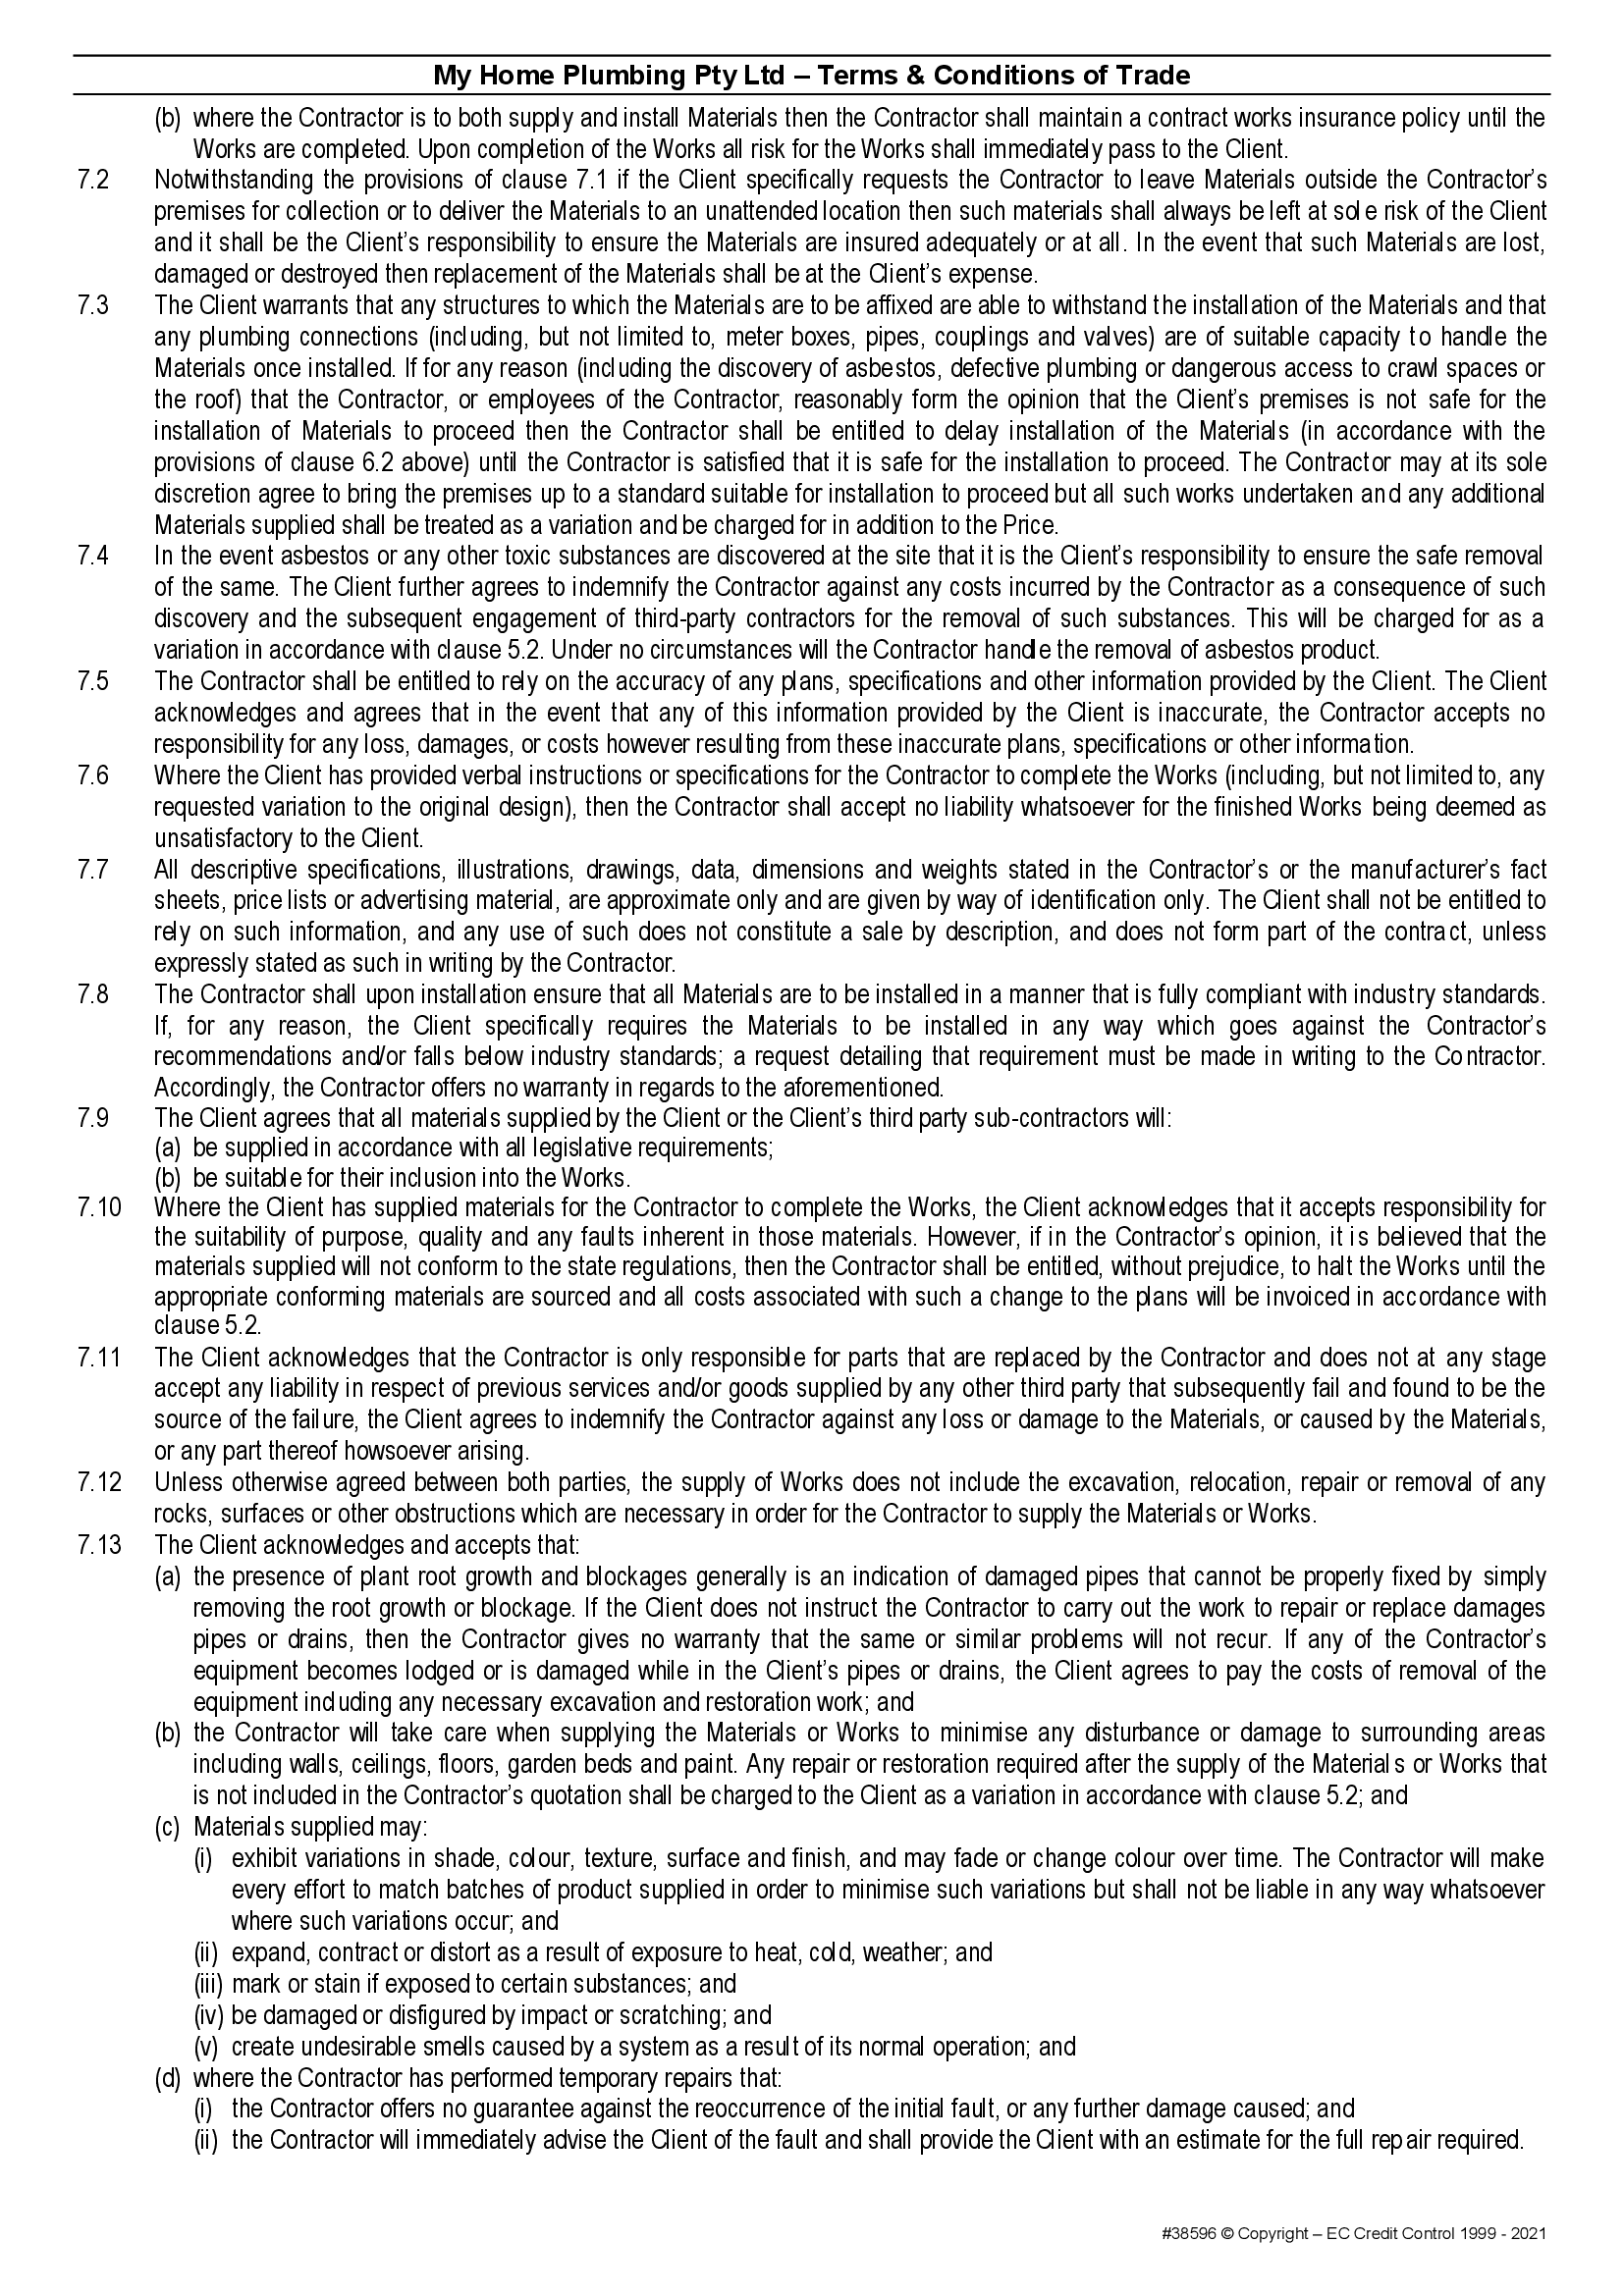 MHP terms and conditions page 3